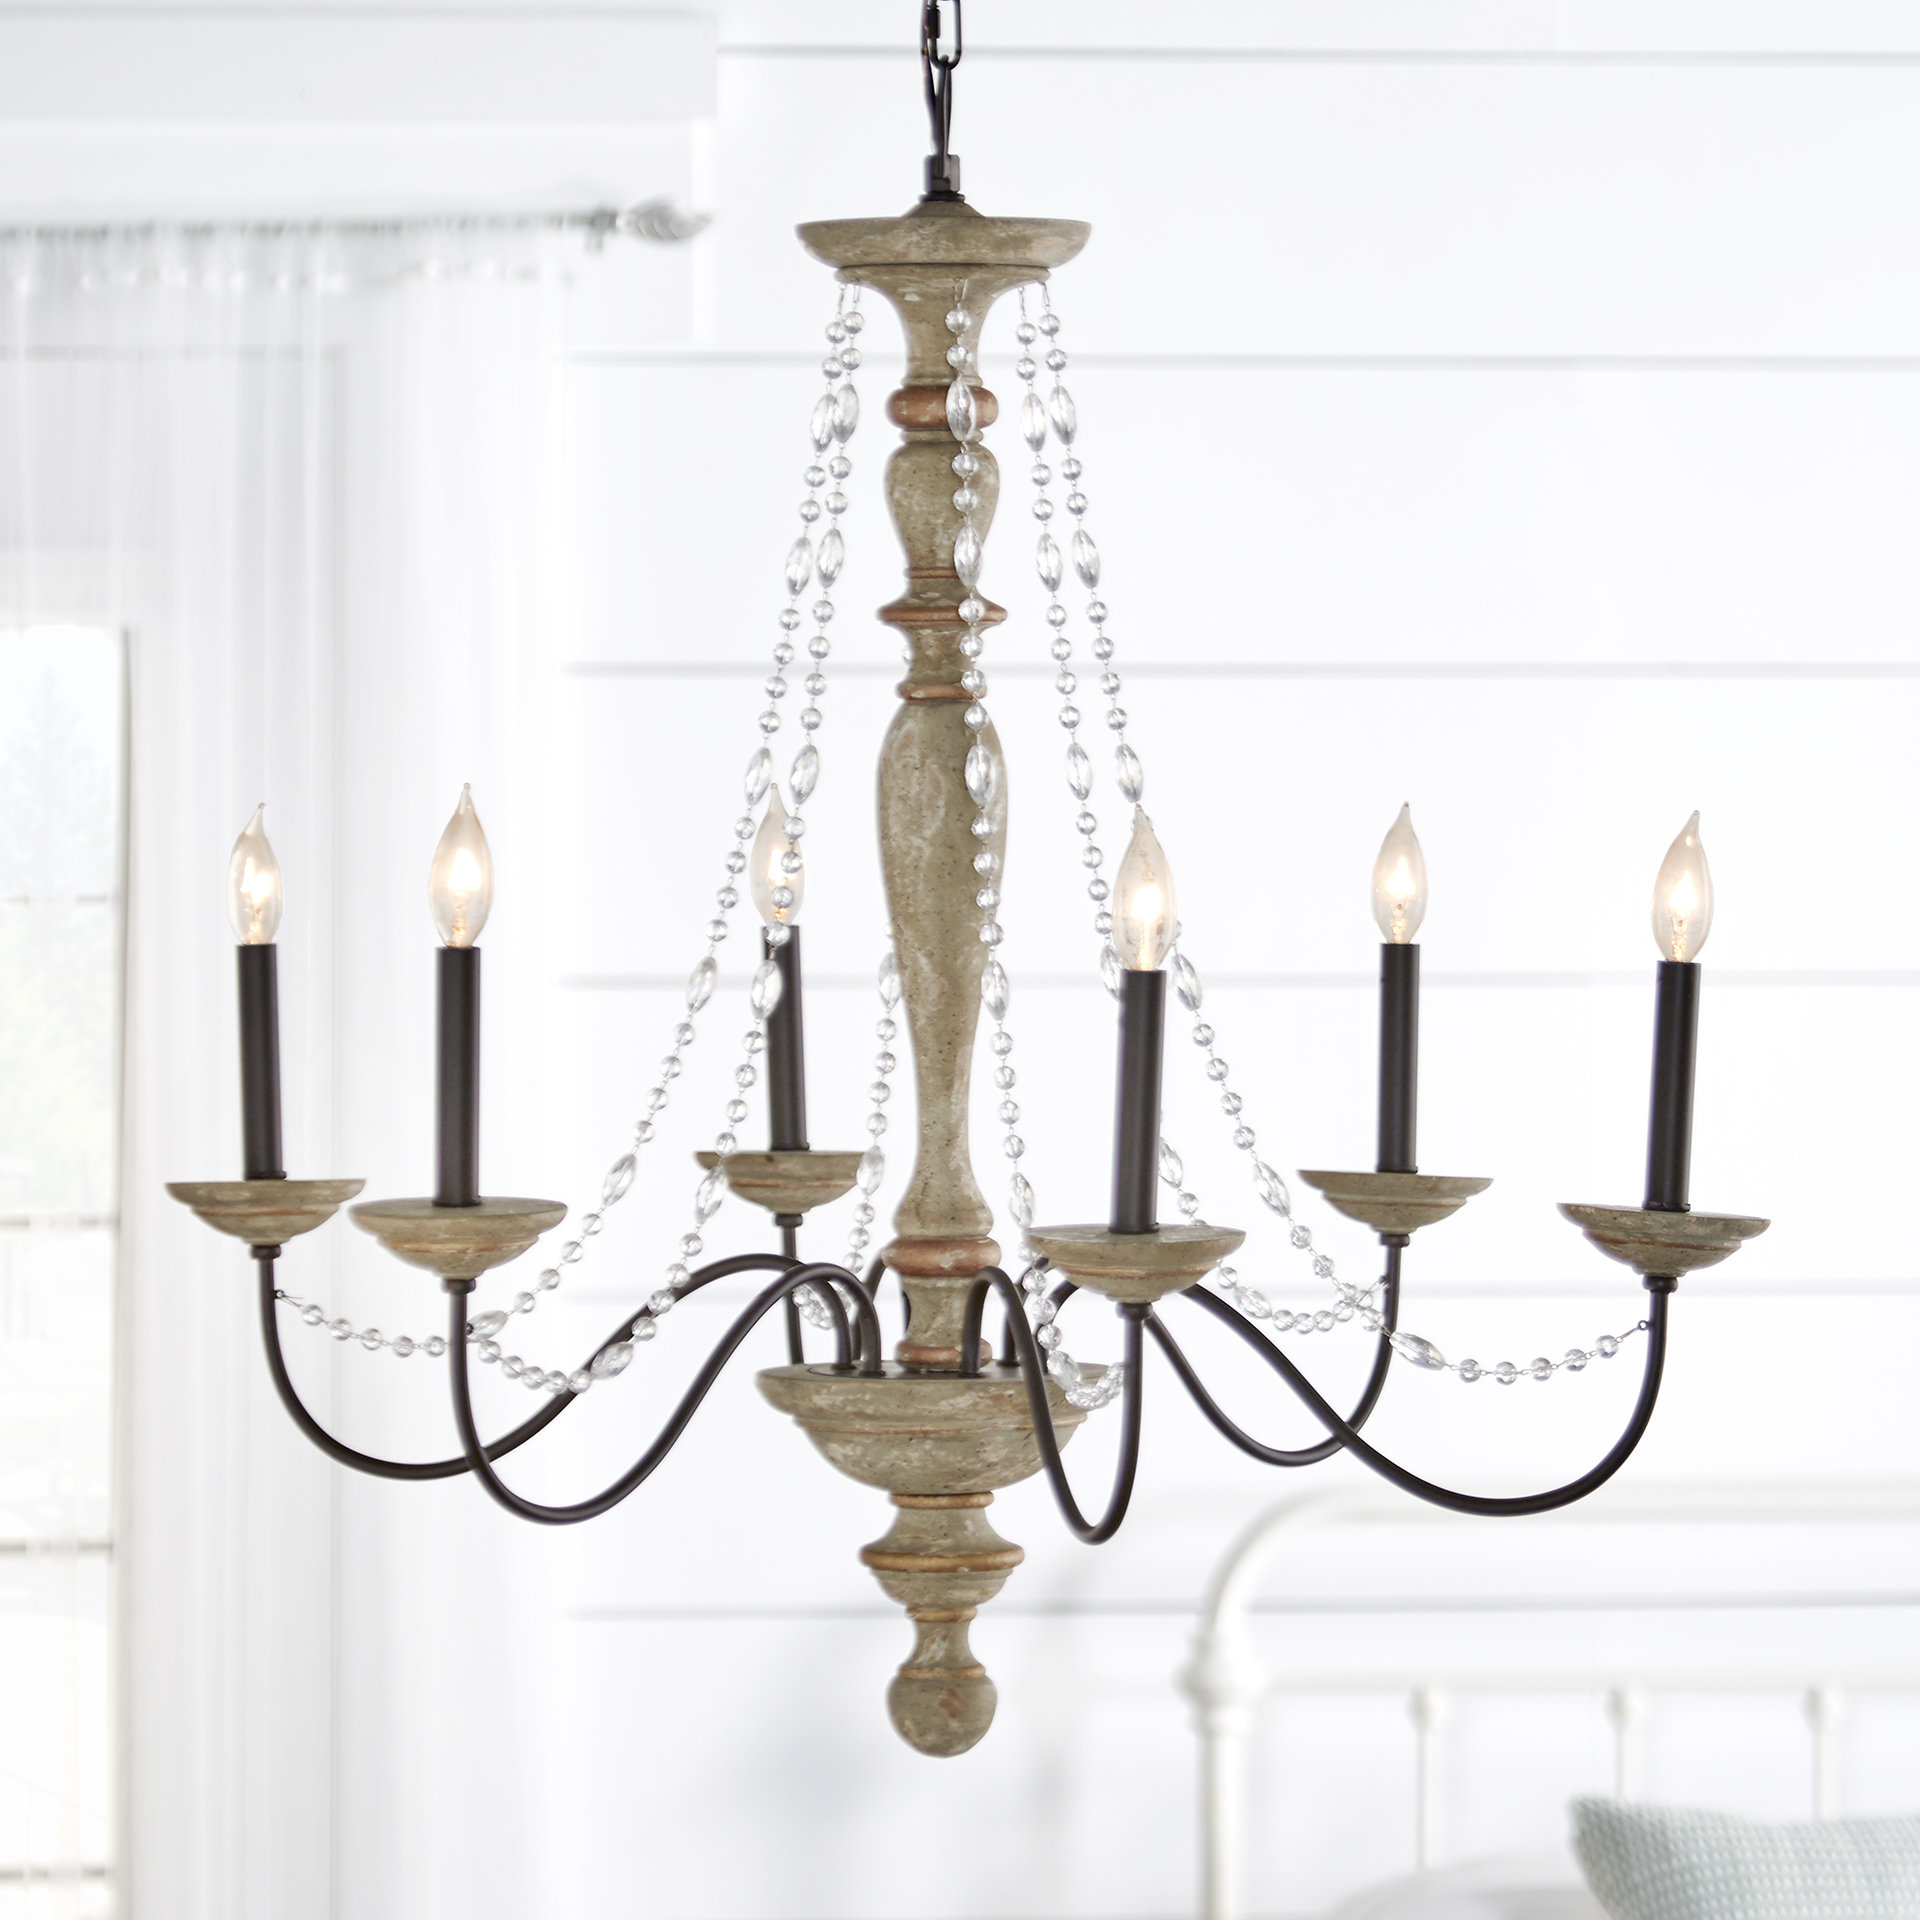 Fashionable Three Posts Brennon 6 Light Candle Style Chandelier Pertaining To Armande Candle Style Chandeliers (Gallery 9 of 20)